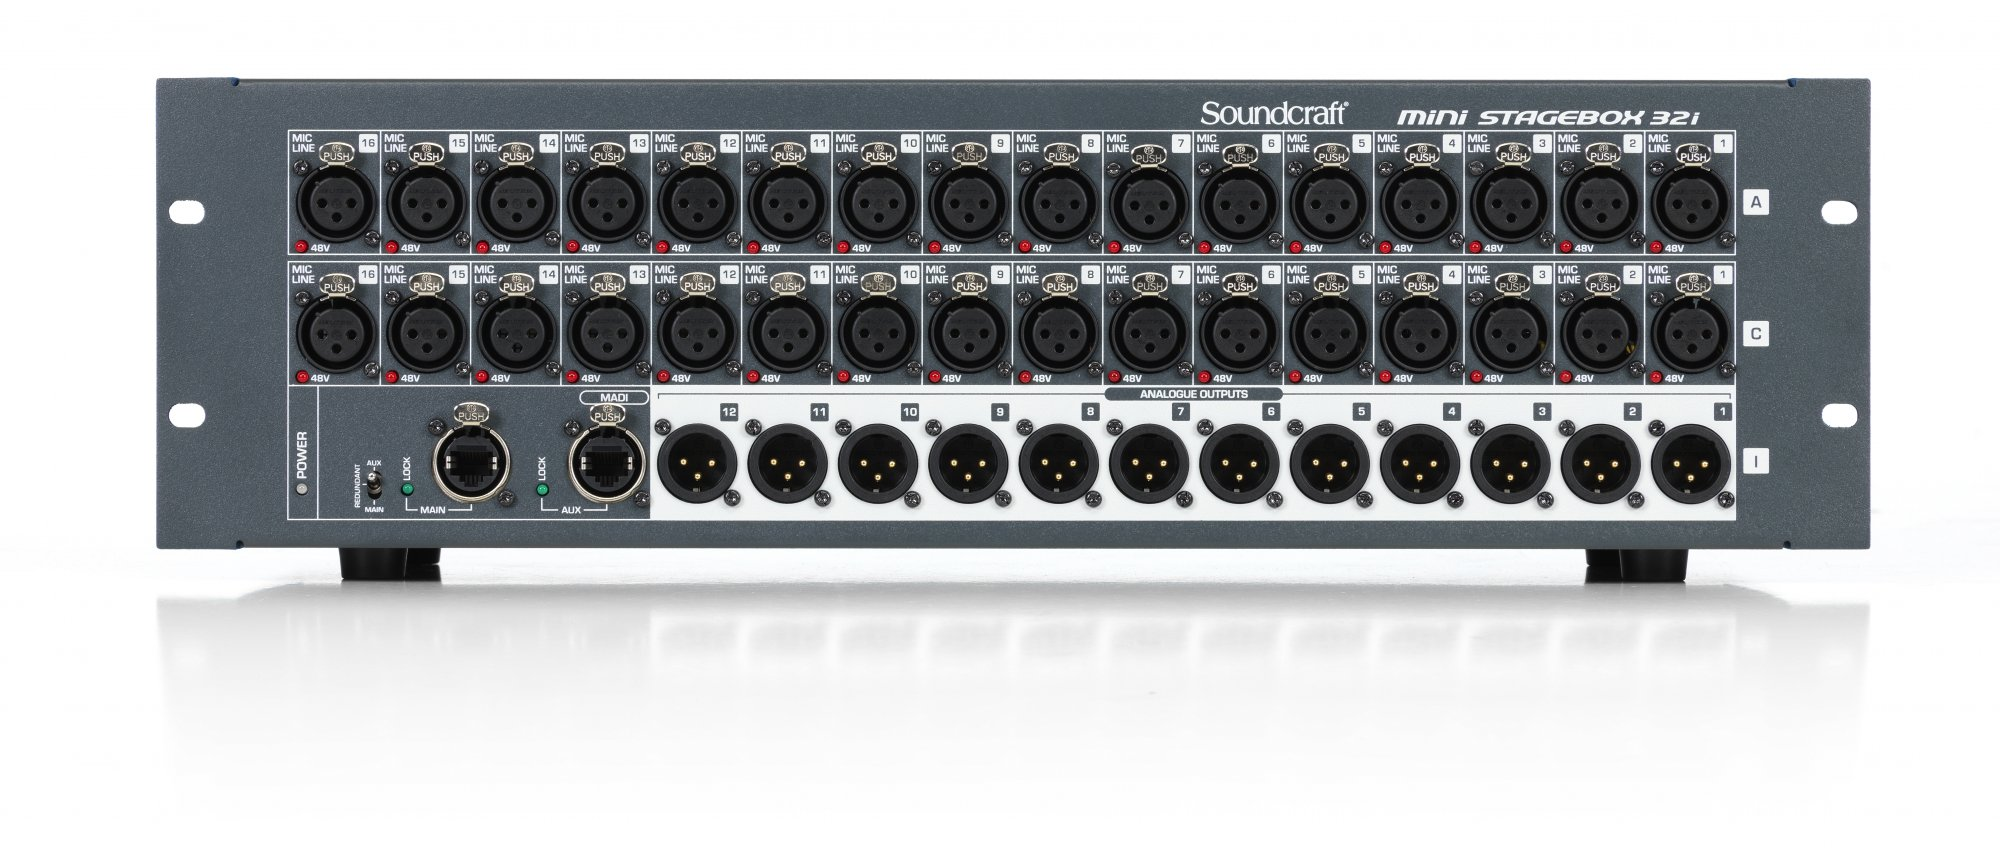 Soundcraft Mini Stagebox 32i Compact Digital Stageboxes with Remote Controlled I/O